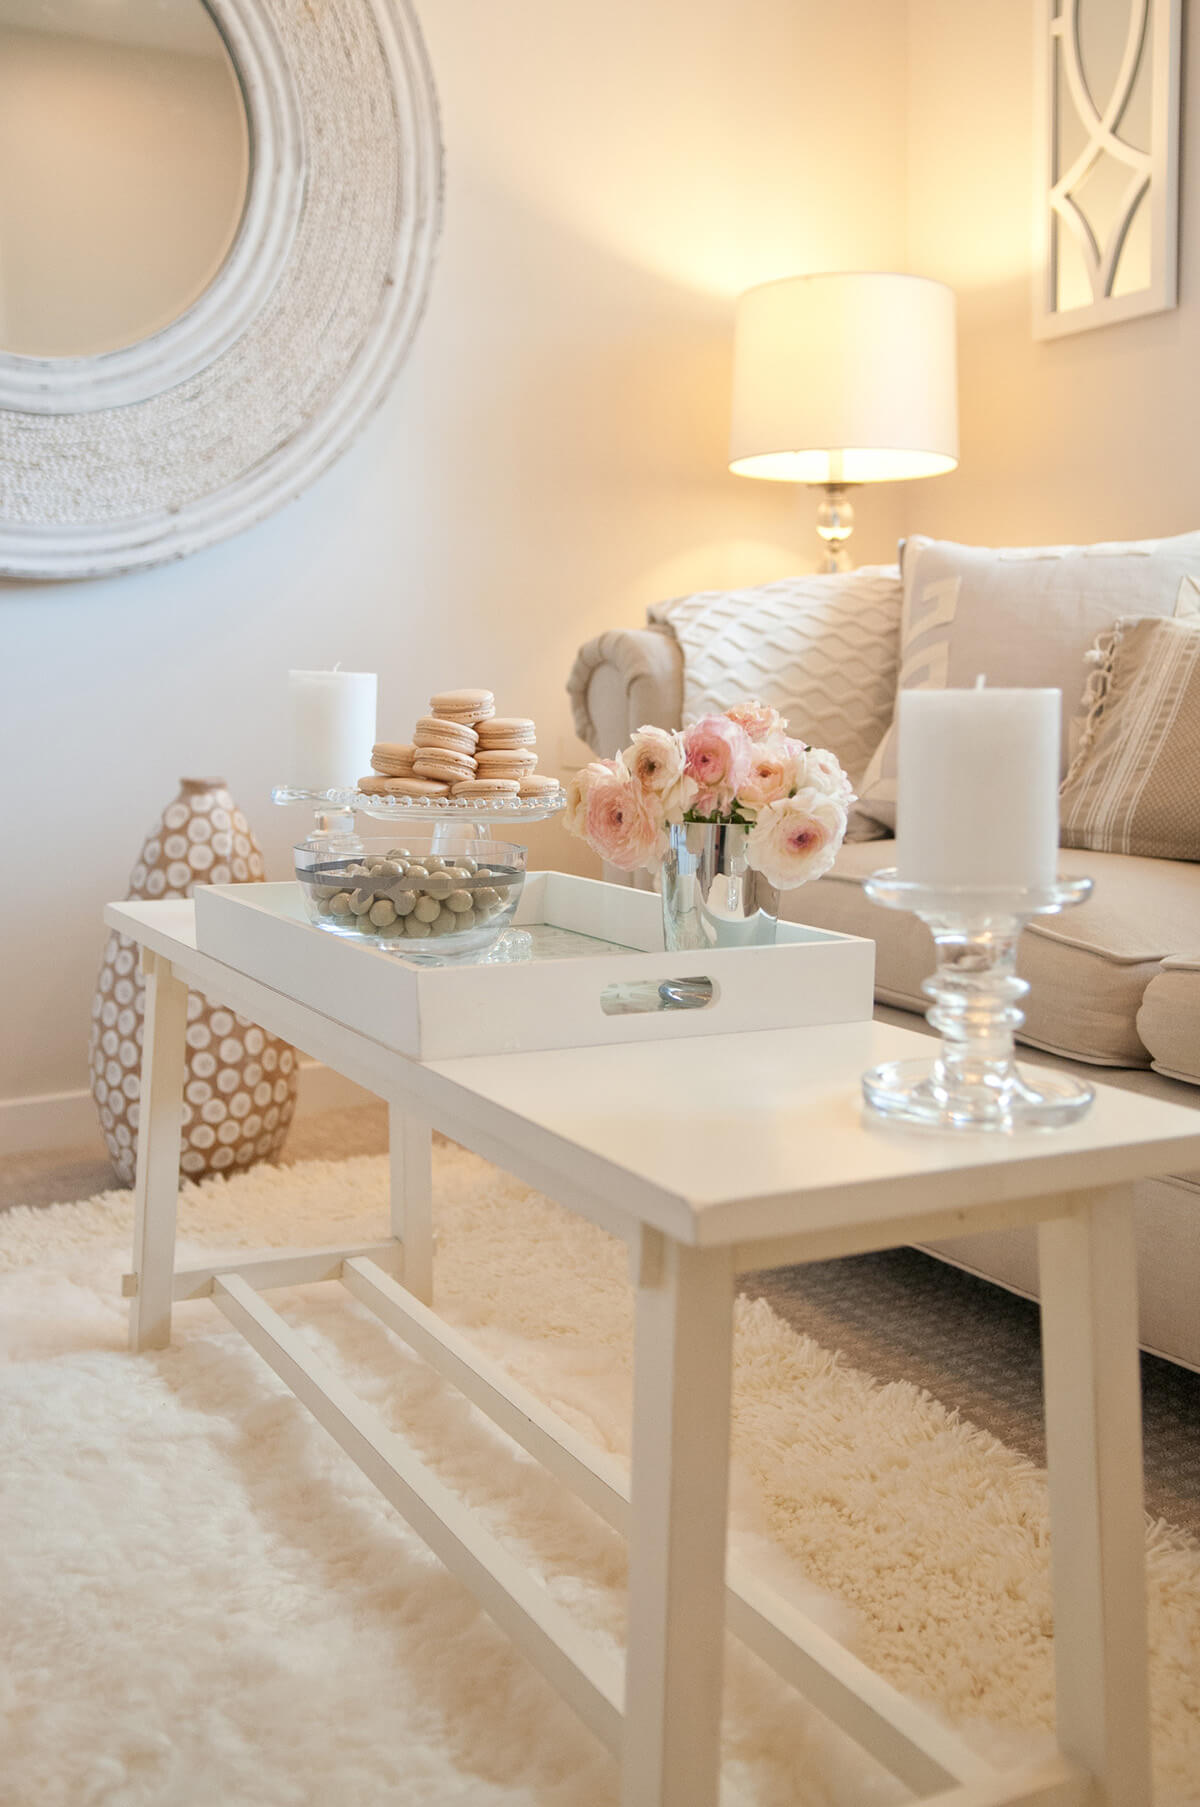 Table Decor And More Decorate With Style 16 Chic Coffee Table Decor Ideas